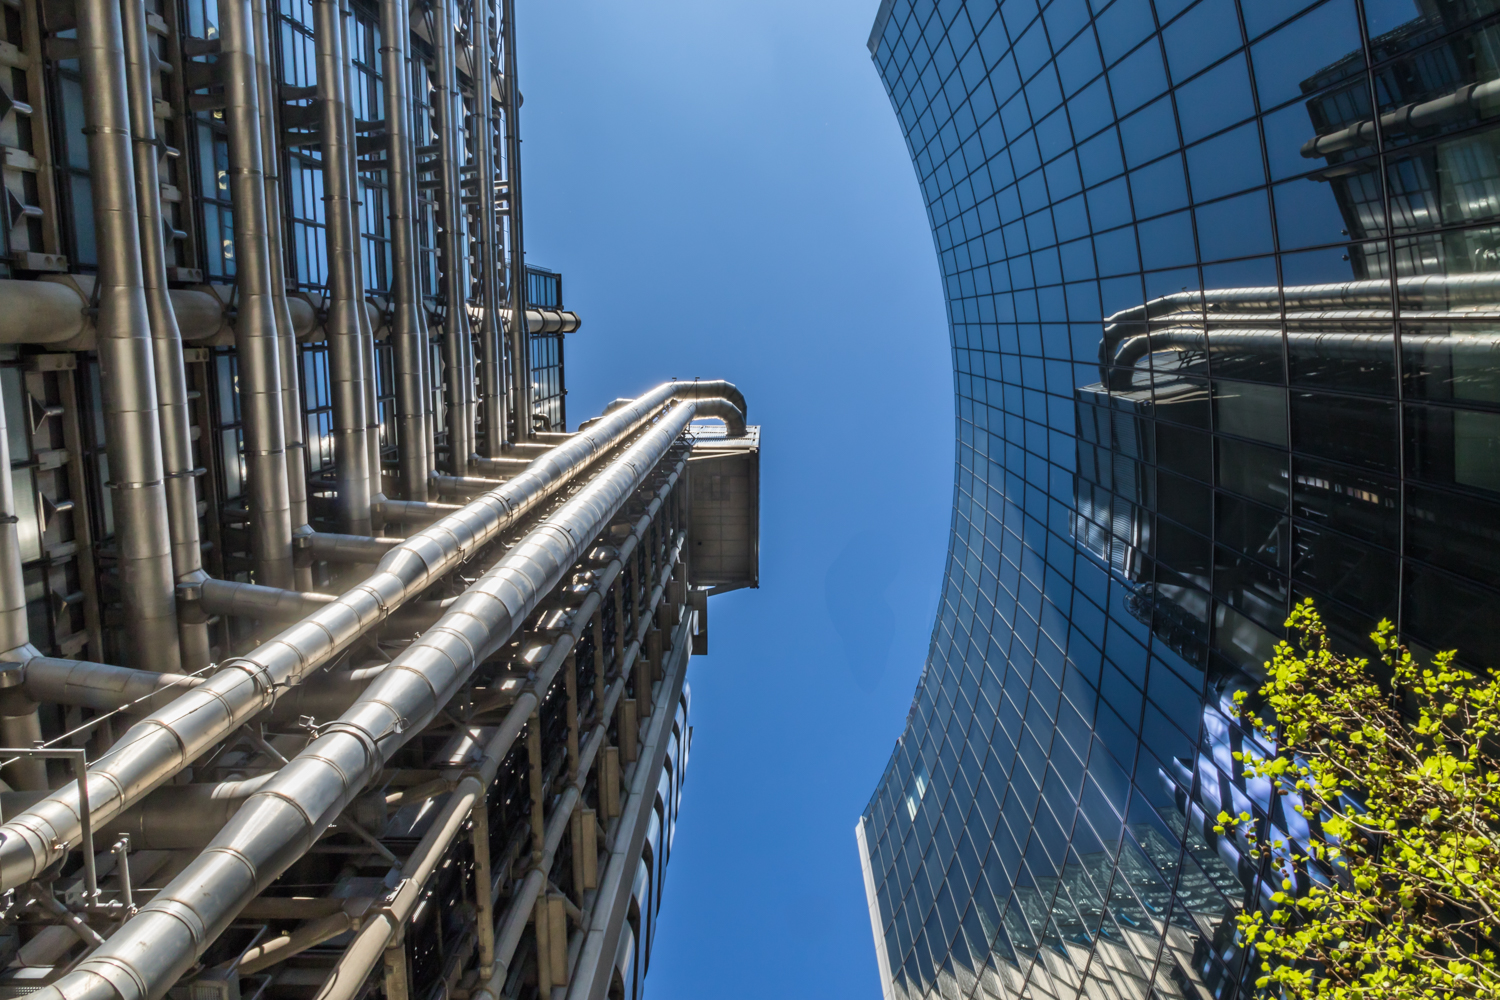 The Lloyds Building and the adjacent Willis Building in London